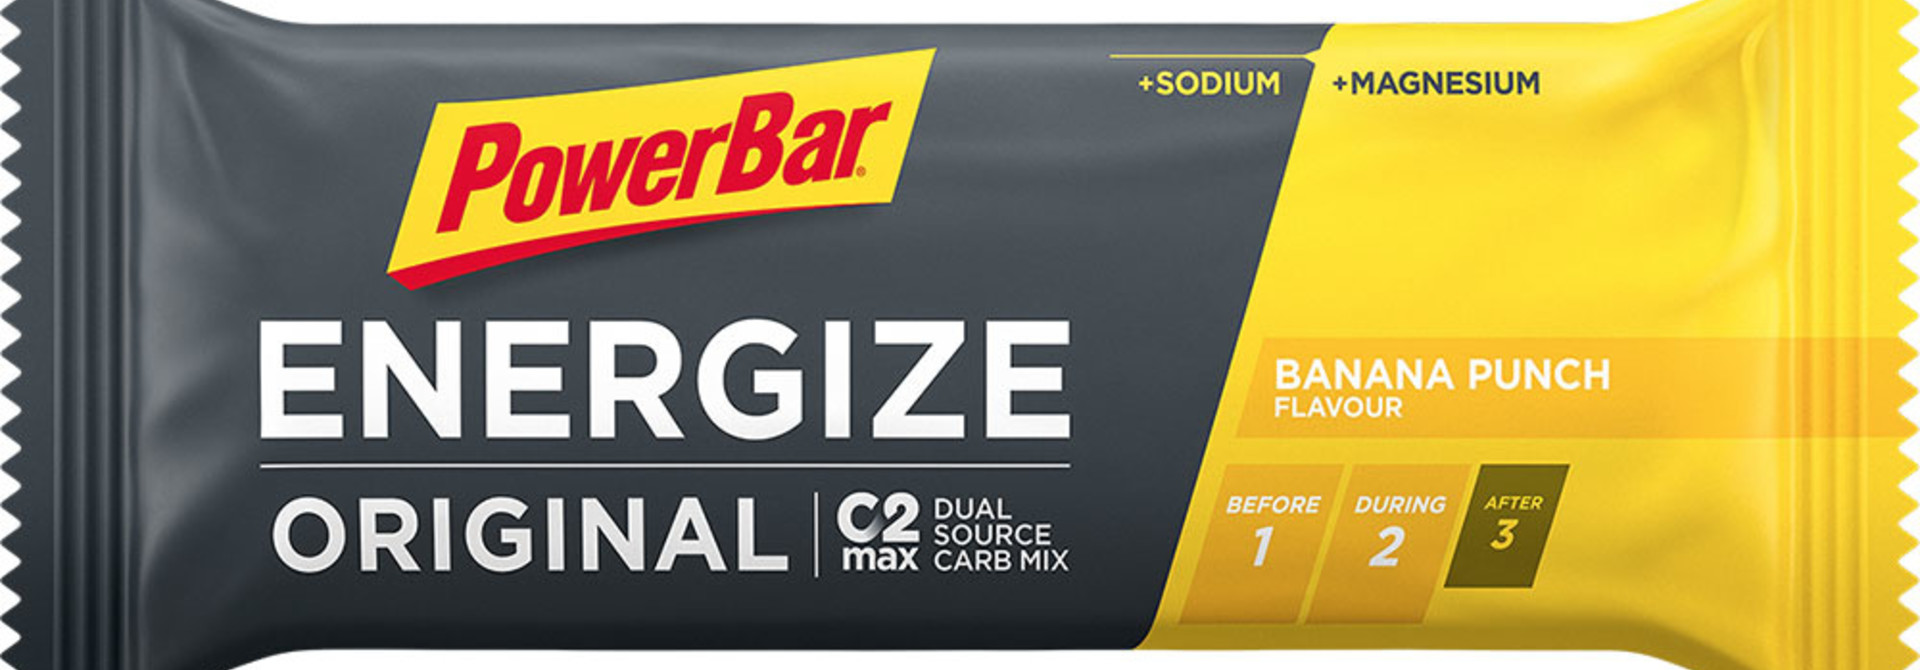 PowerBar Energize Original - Banana Punch